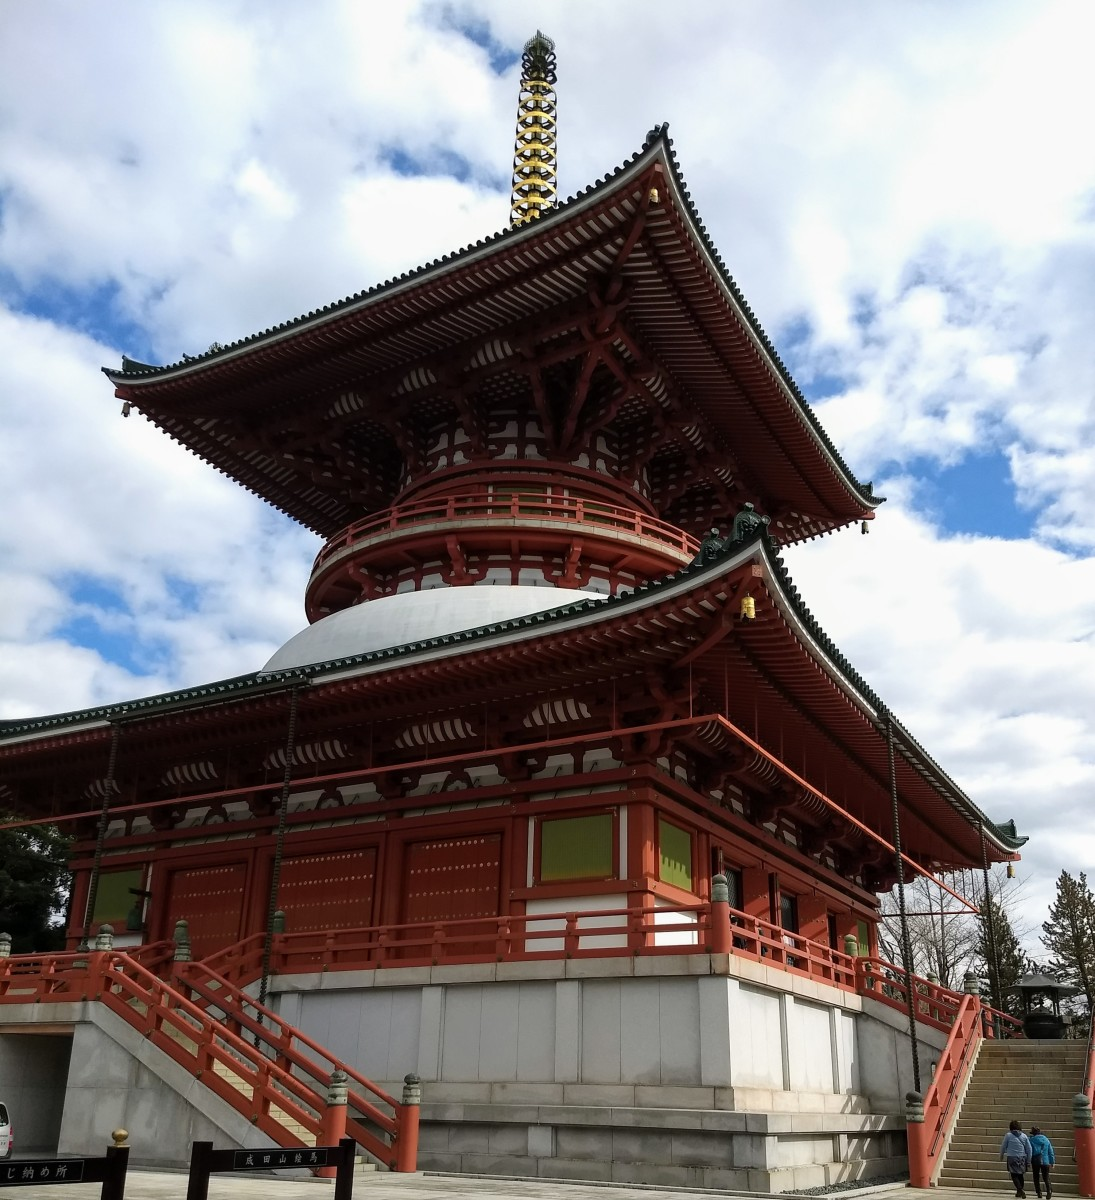 Great Peace Pagoda, built in 1984 at Naritasan Shinshoji Temple.